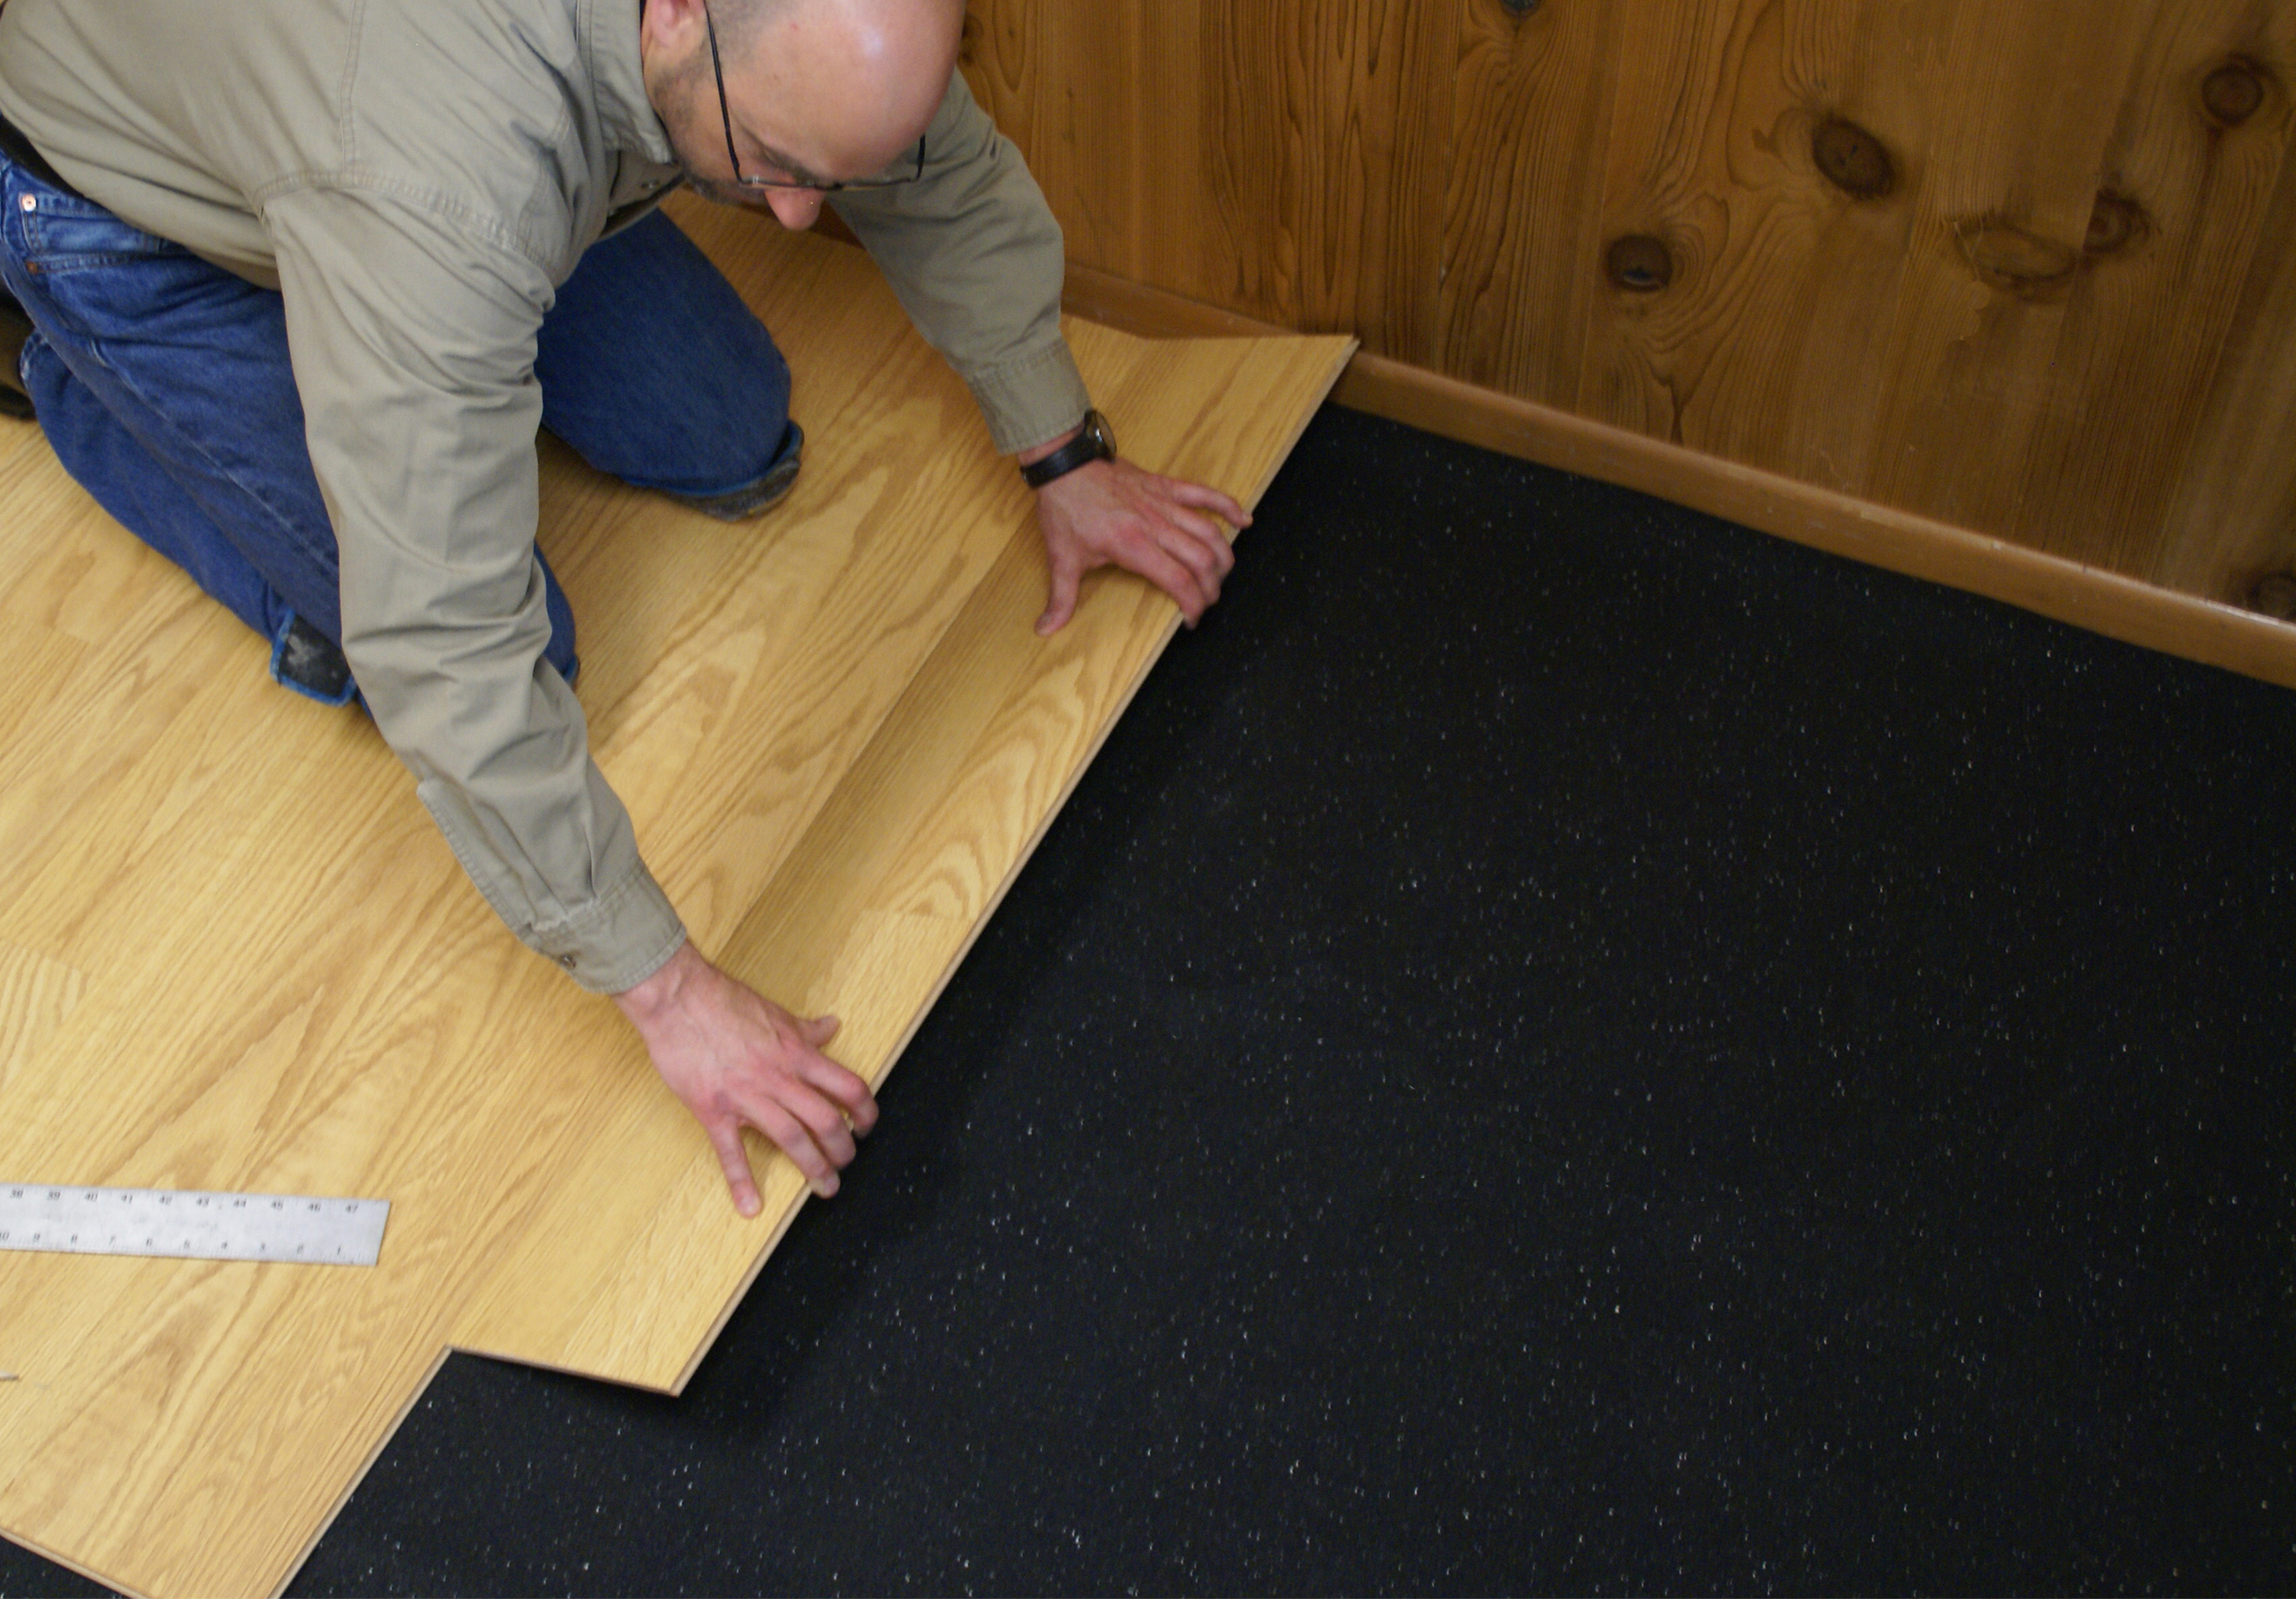 Hardwood Flooring Underlayment | Wood Floor Glue with Moisture Barrier | Cork Underlayment